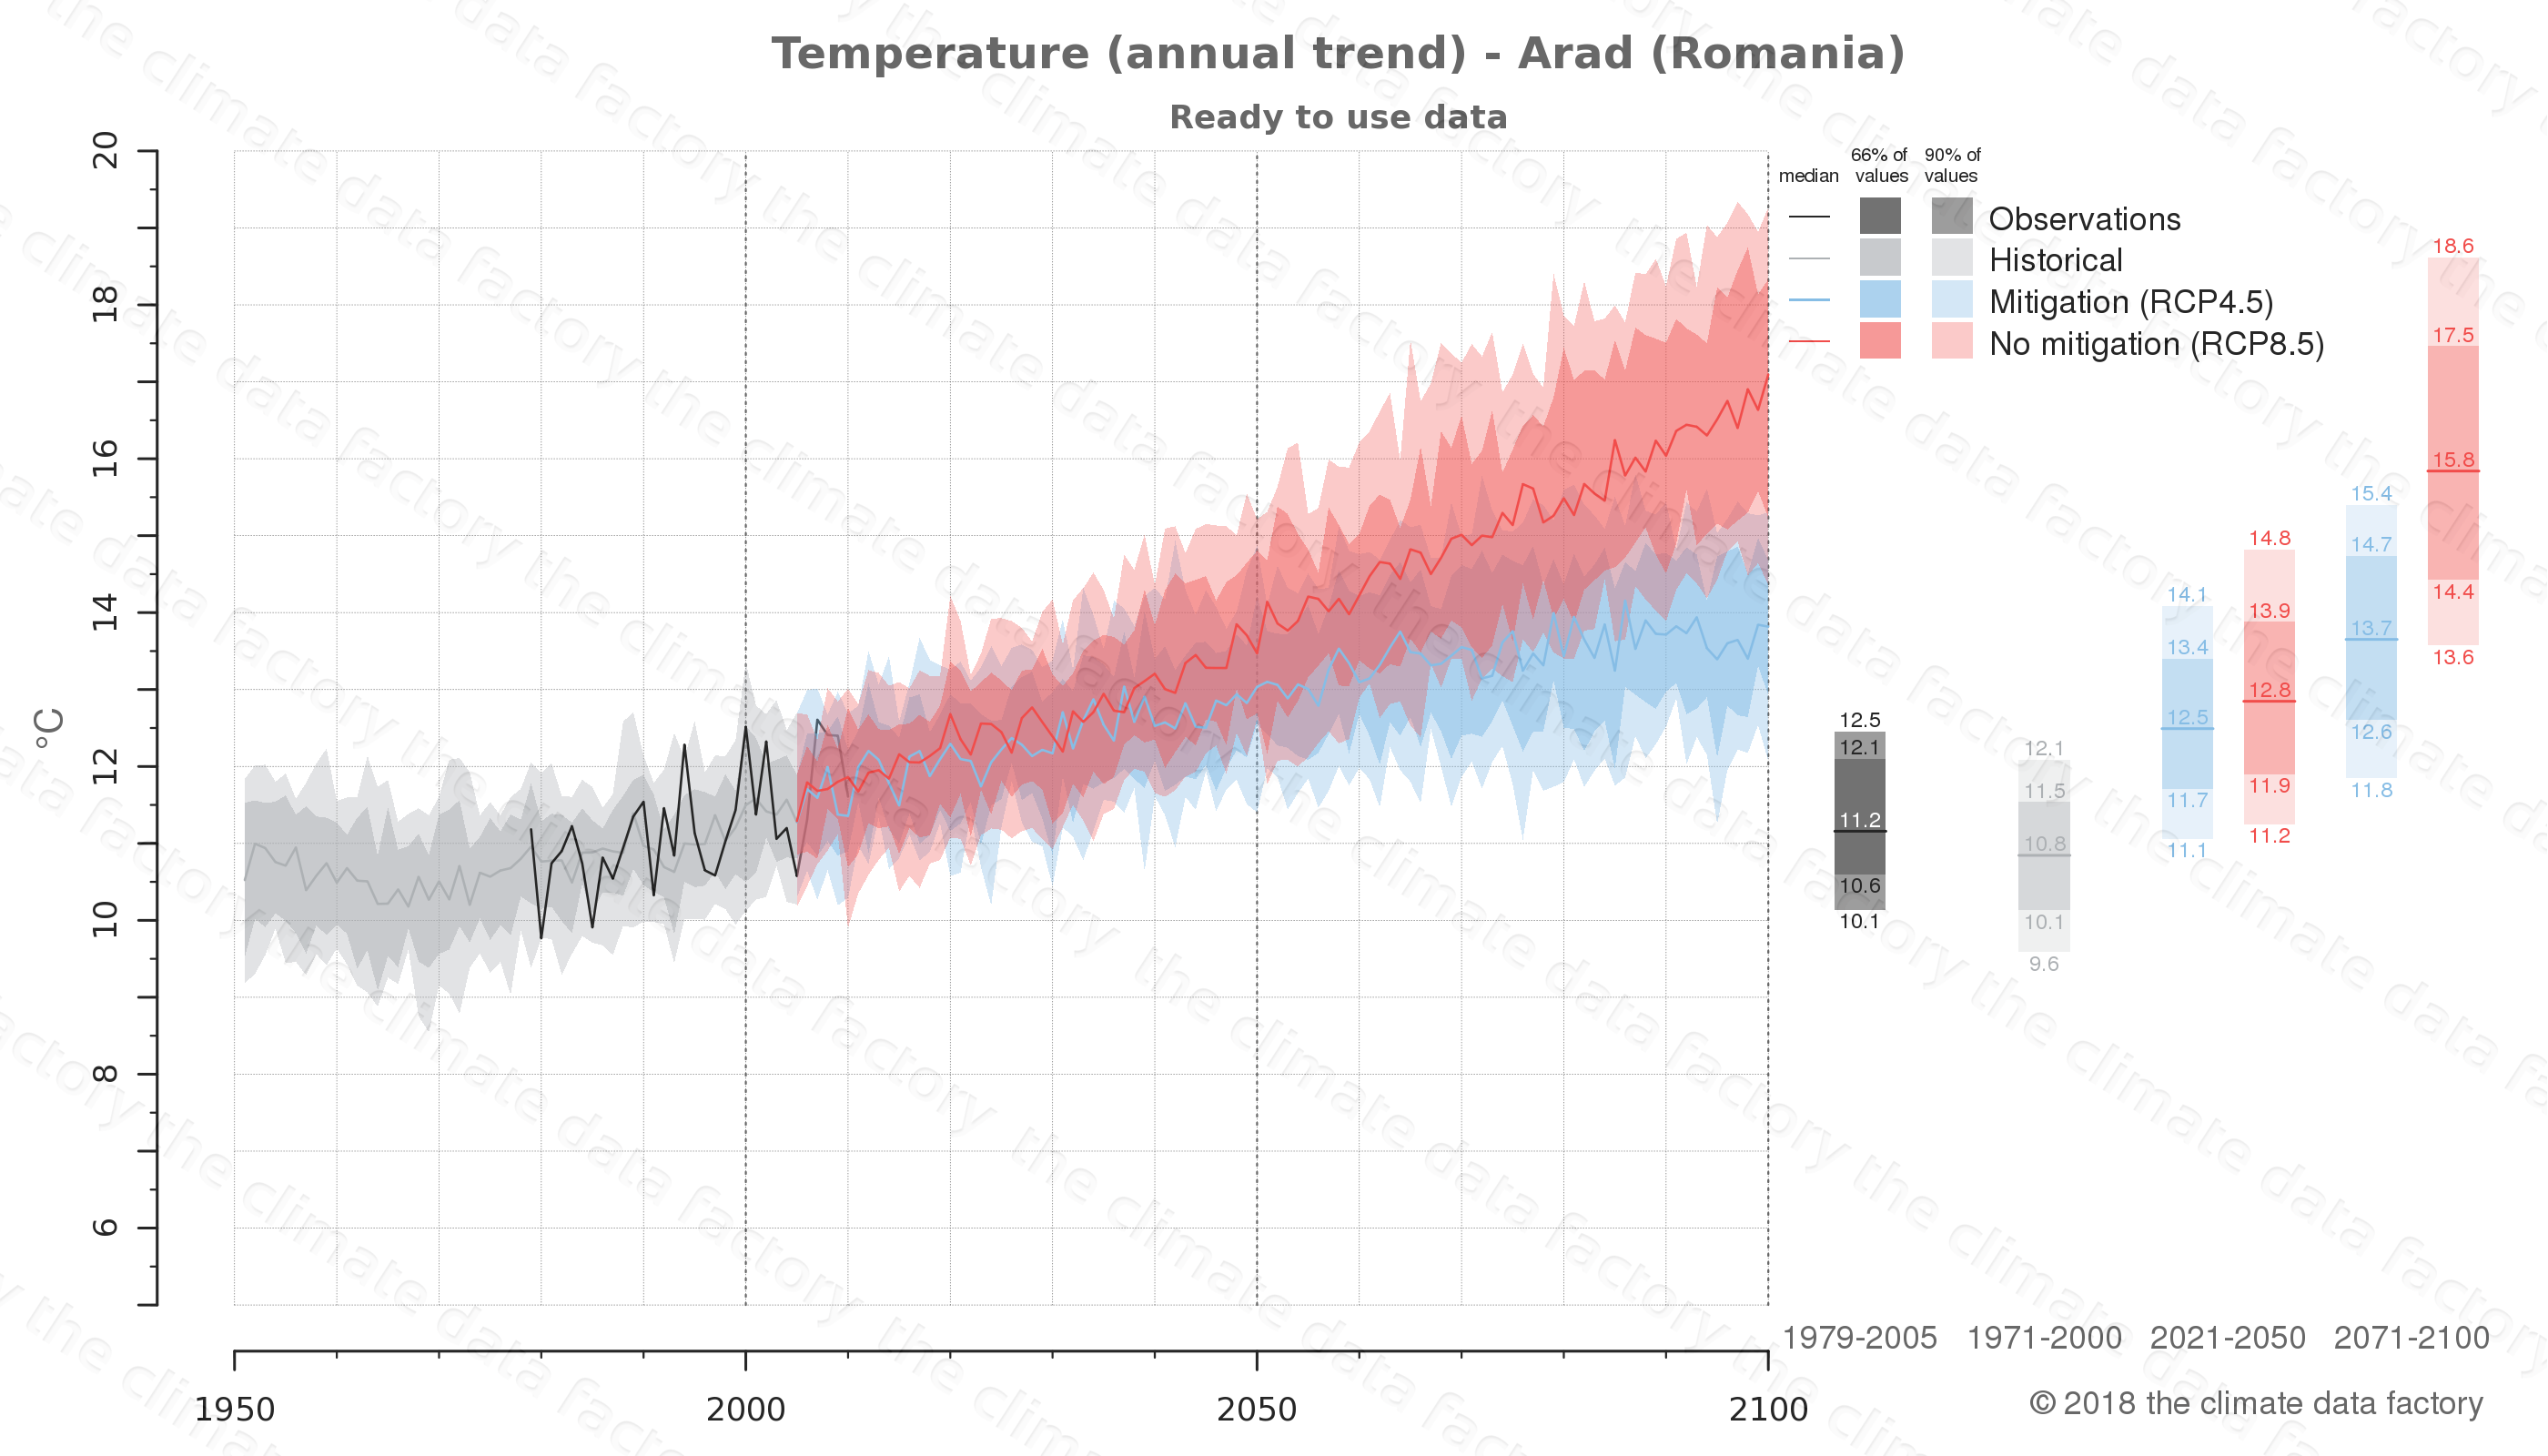 climate change data policy adaptation climate graph city data temperature arad romania